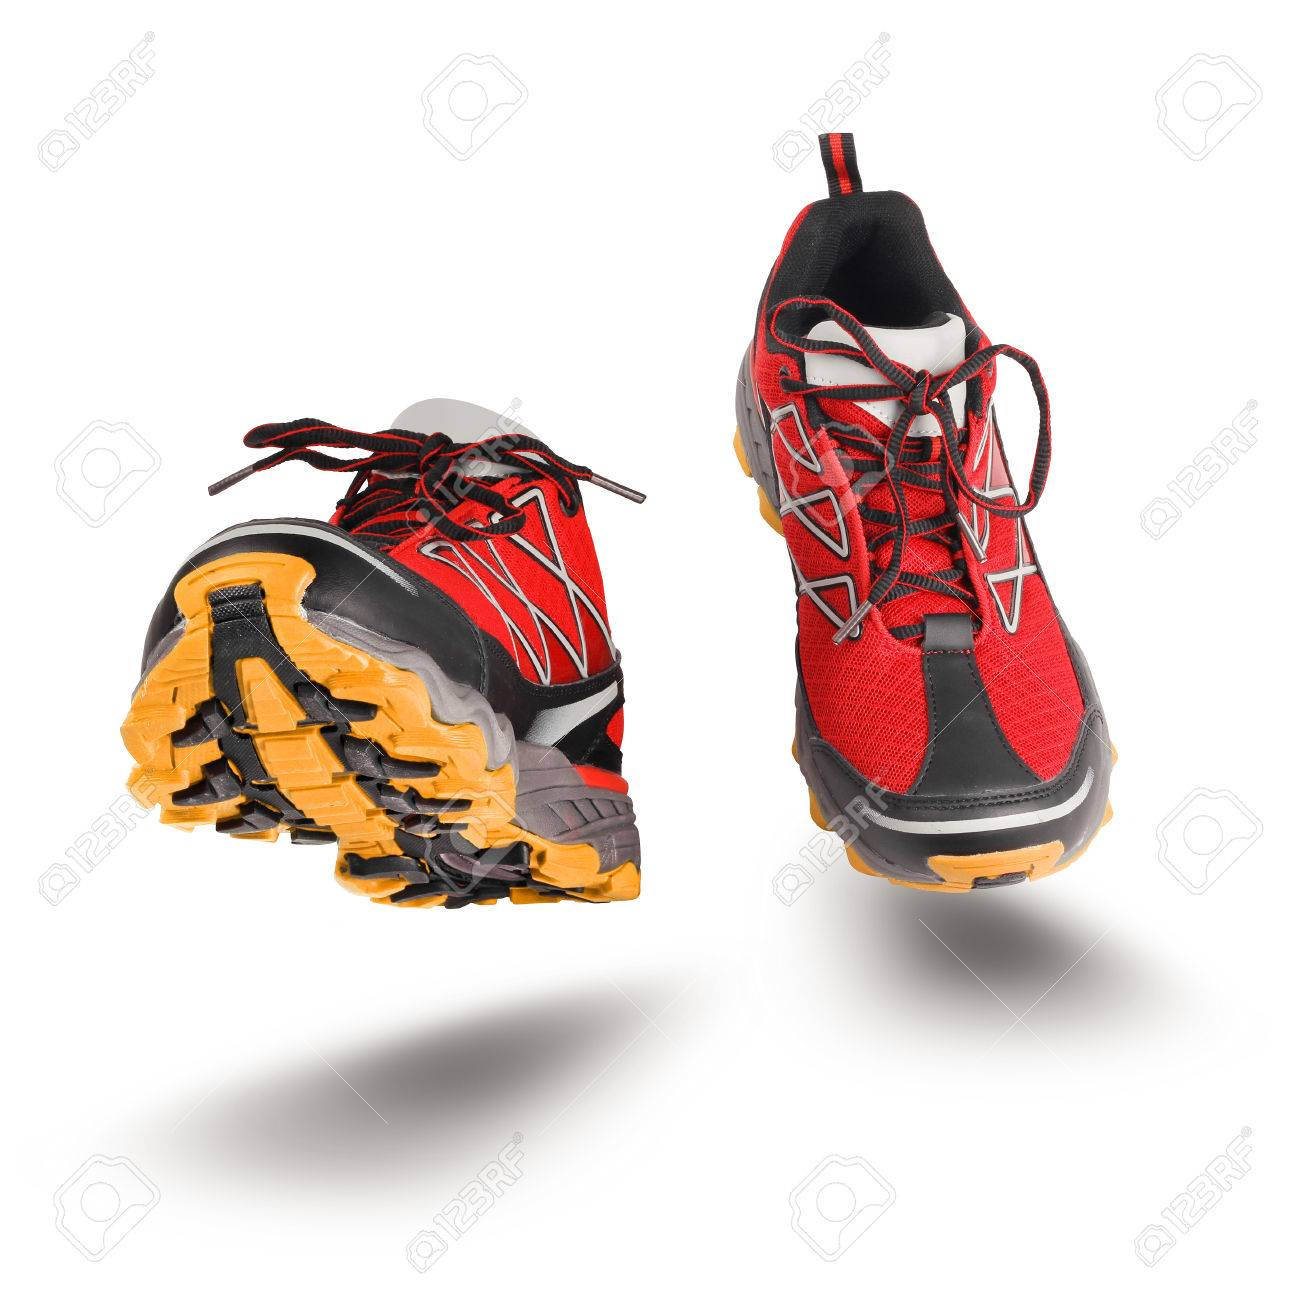 White Red Seen FrontIsolated Shoes Sport On Background Running 54RjLA